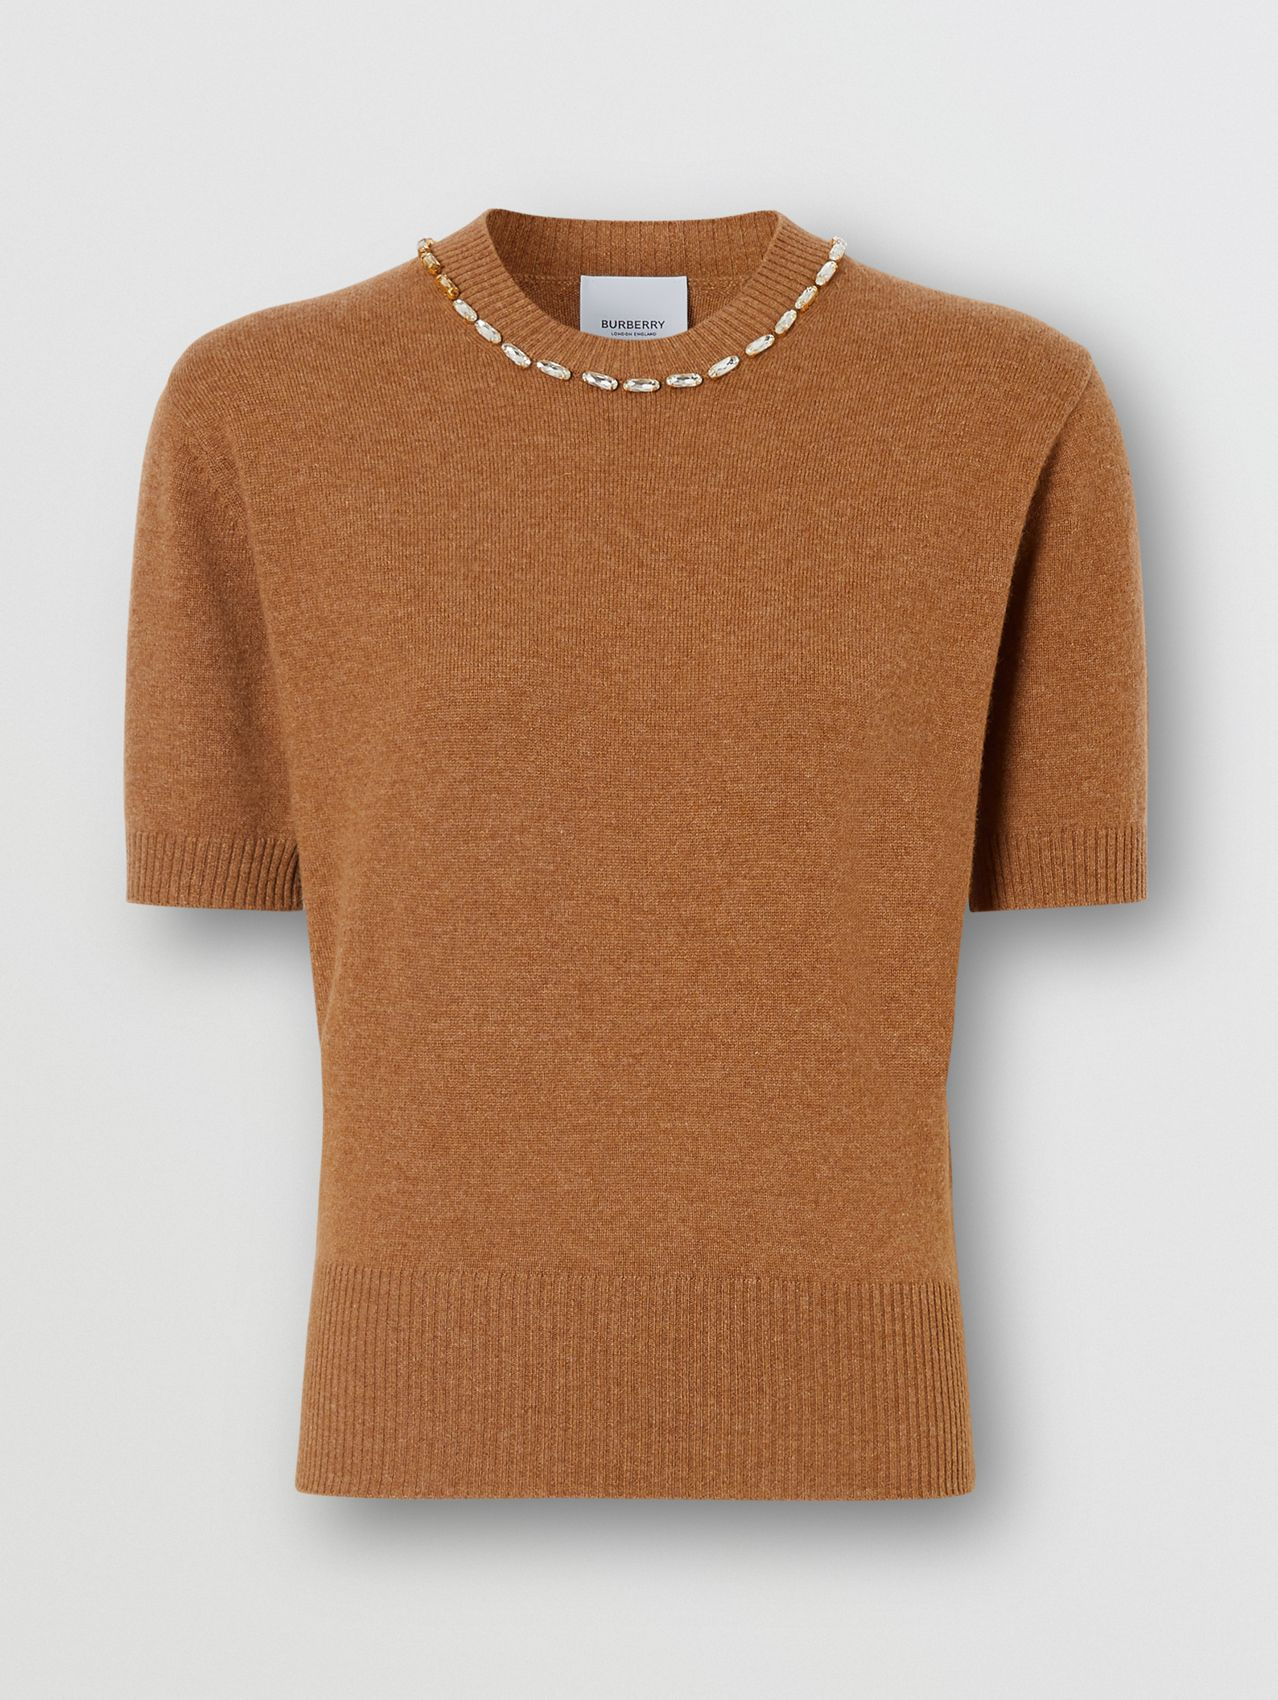 Embellished Cashmere Top (Burnt Almond)